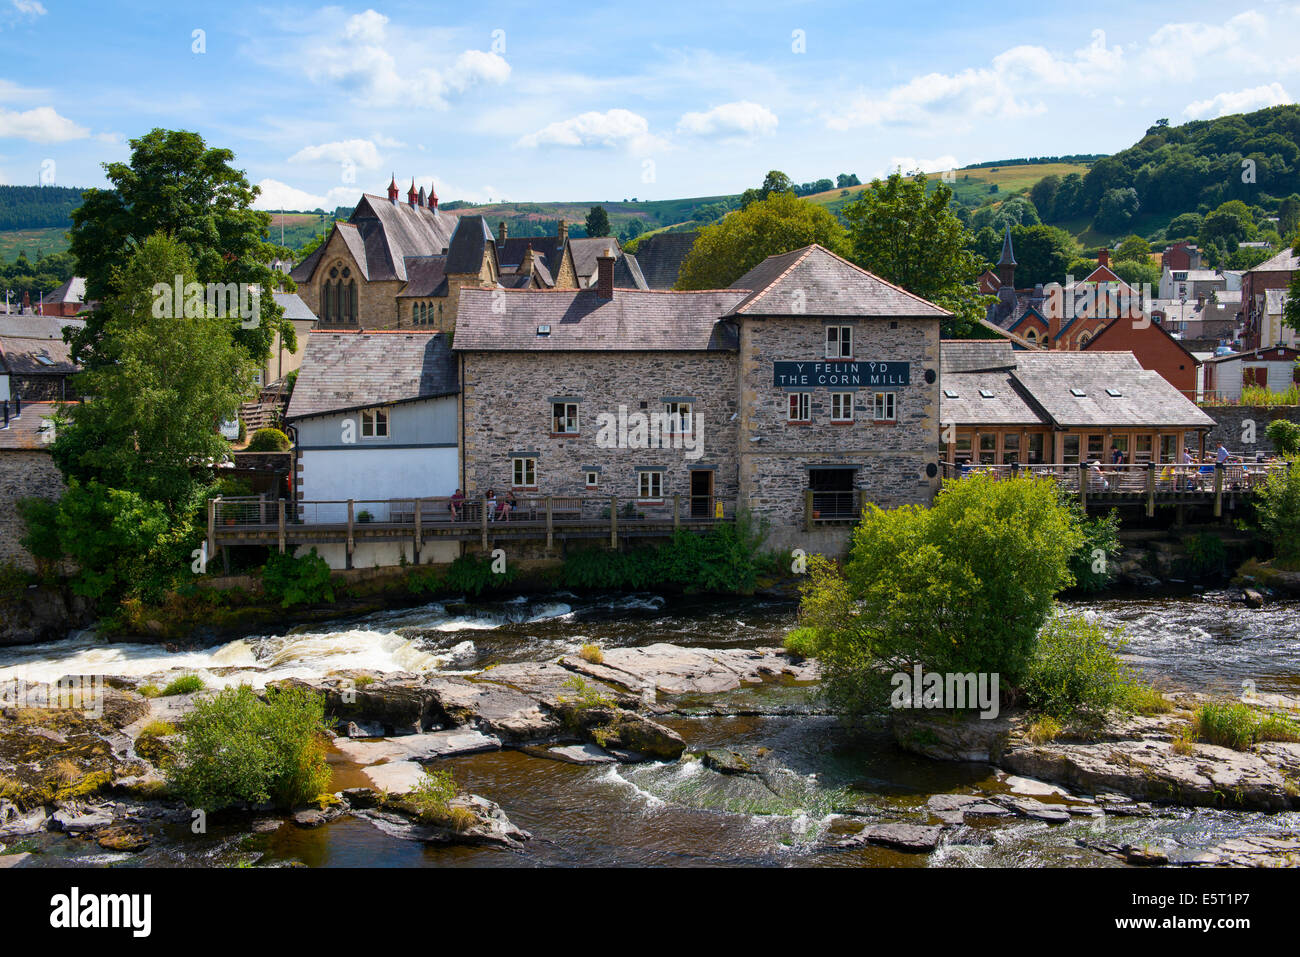 The Corn Mill and the River Dee at Llangollen, Denbighshire, Wales, UK Stock Photo